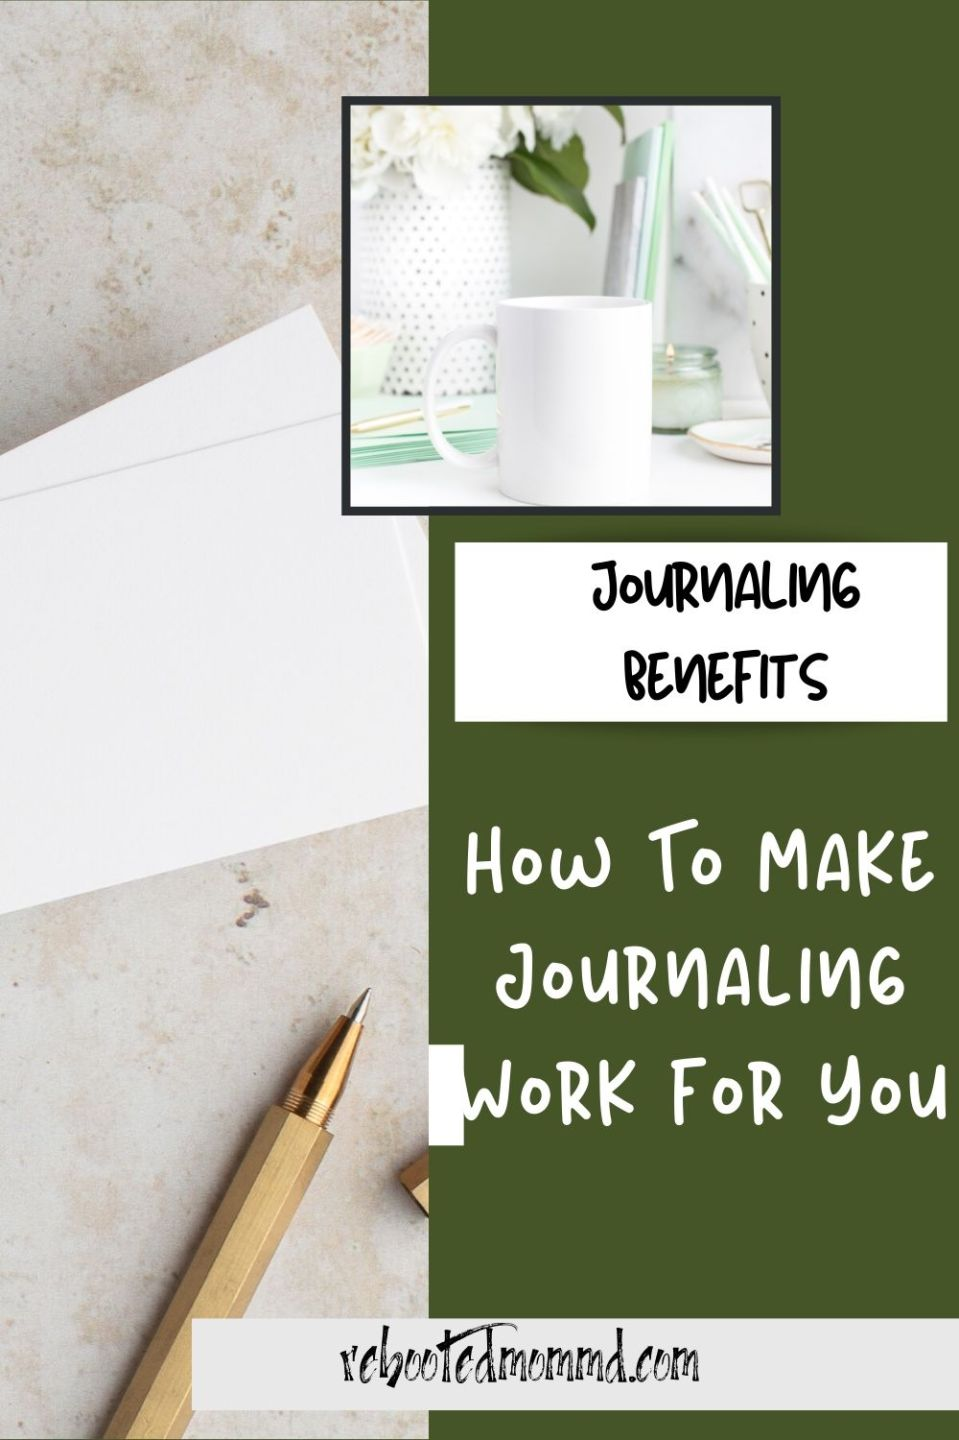 How to Make Journaling Work for You